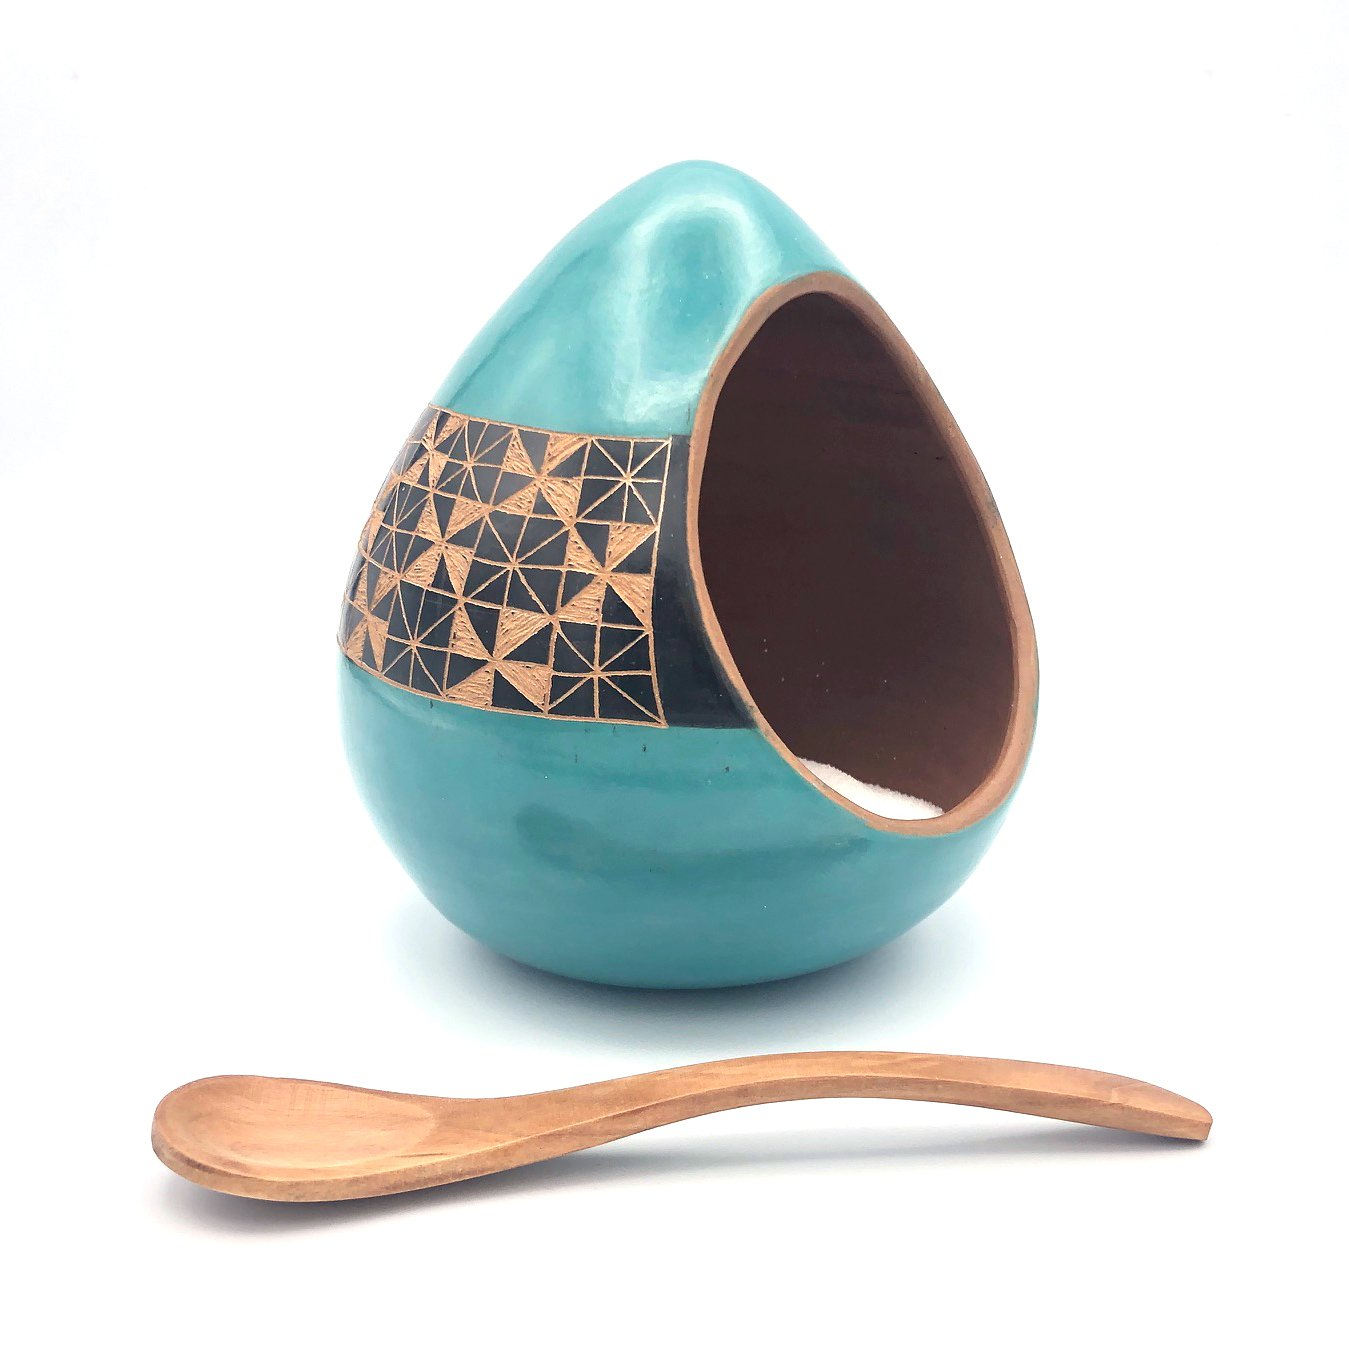 Salt Cellar (Turquoise with Black Geometric)